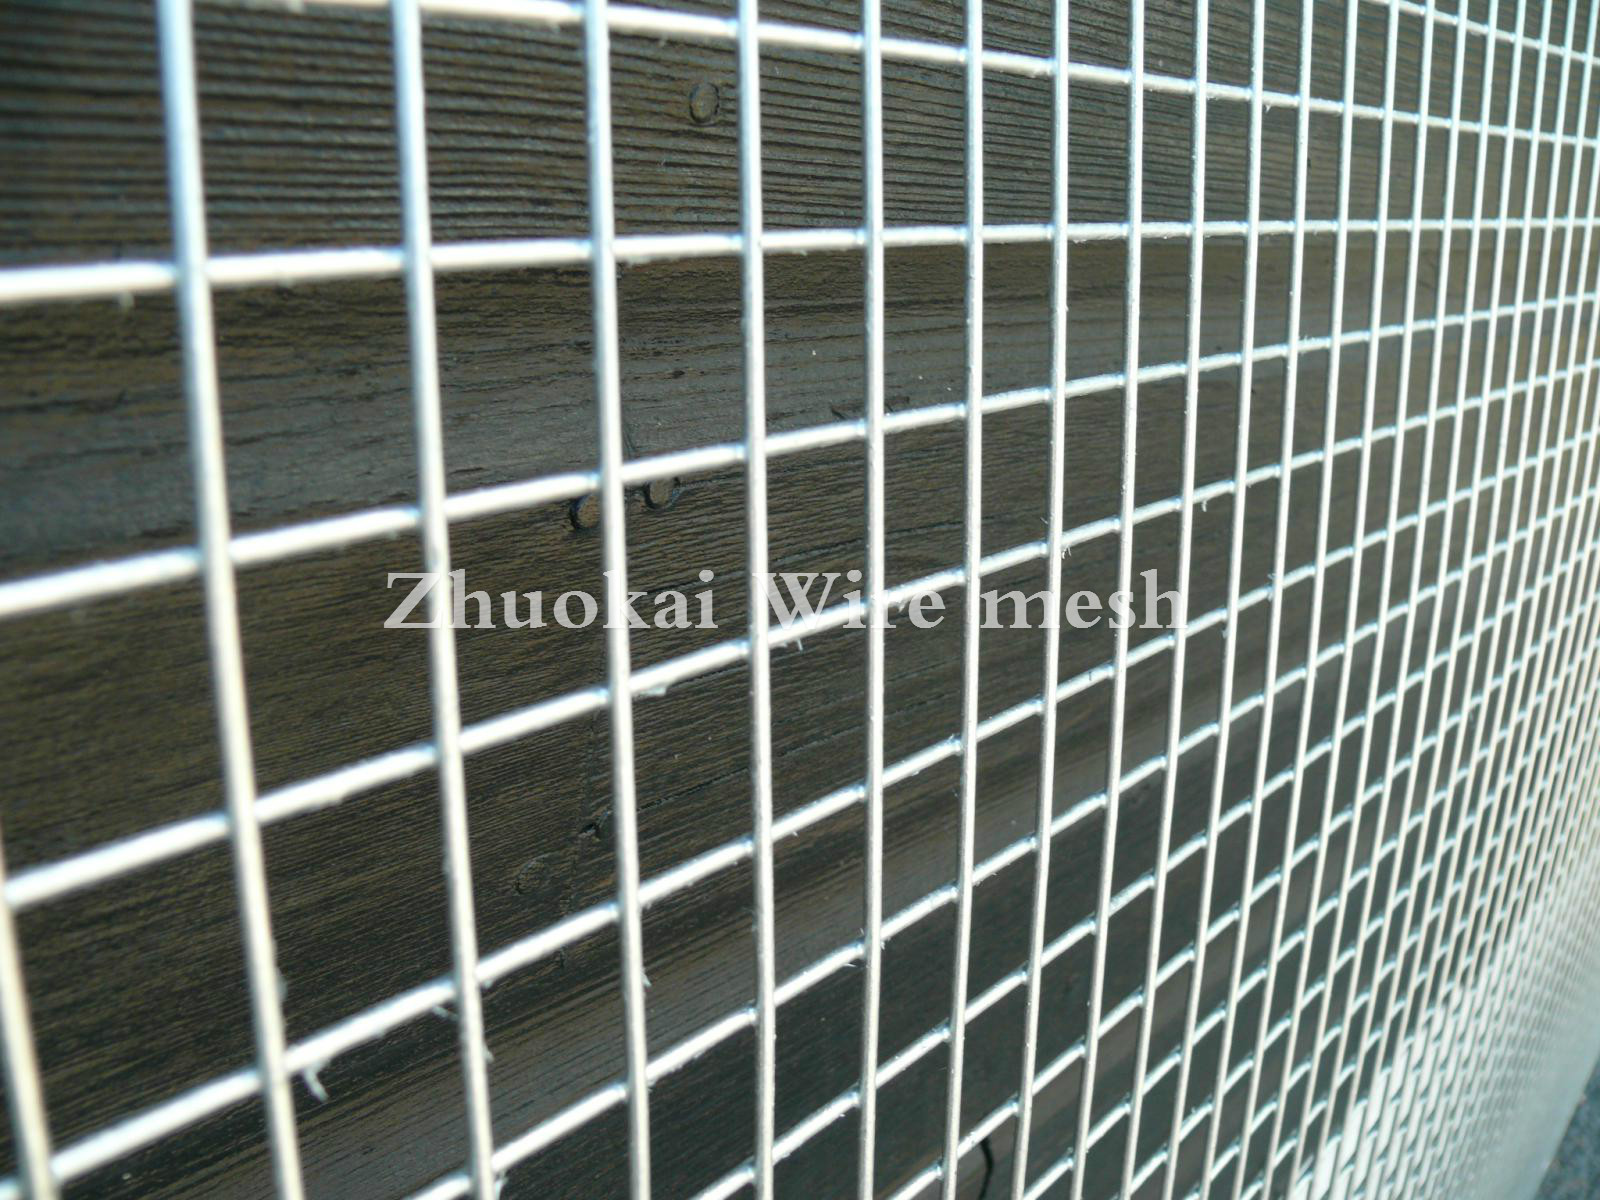 Hot Dipped Galvanized Welded Wire Mesh - Zhuokai Wire Mesh Product ...